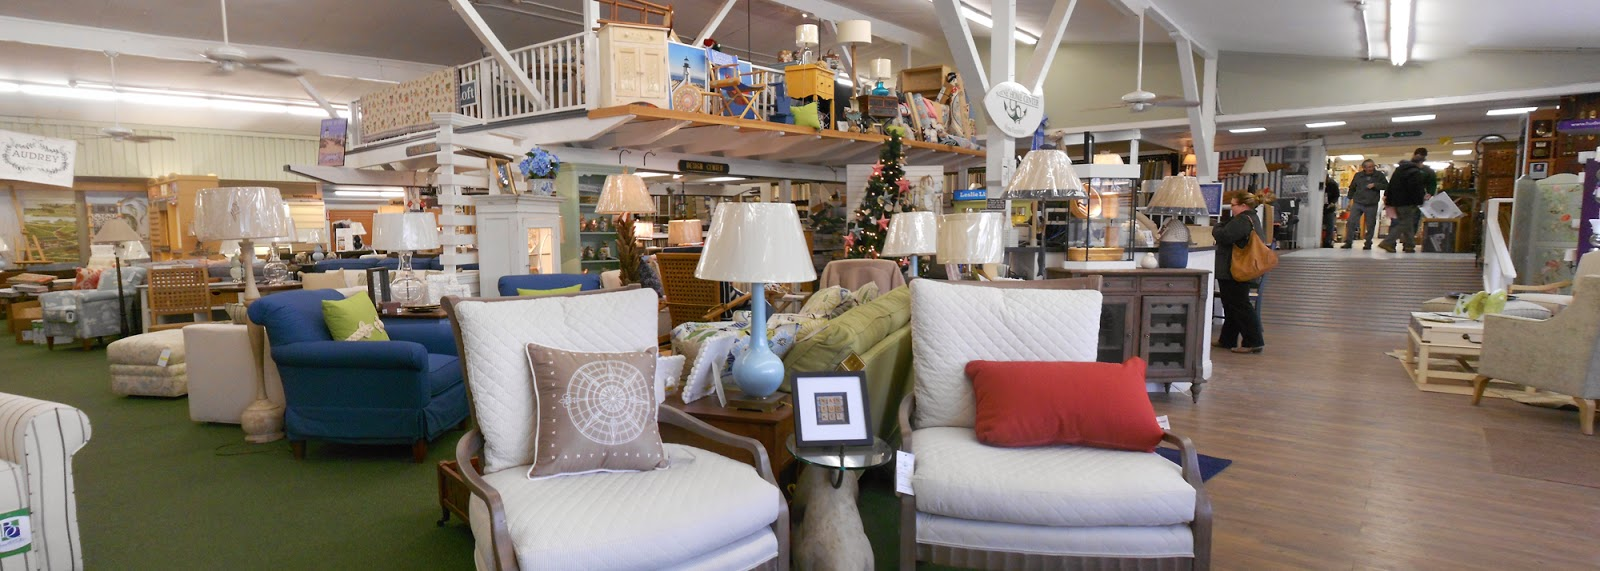 Marine Home Center's Home Furnishings Department